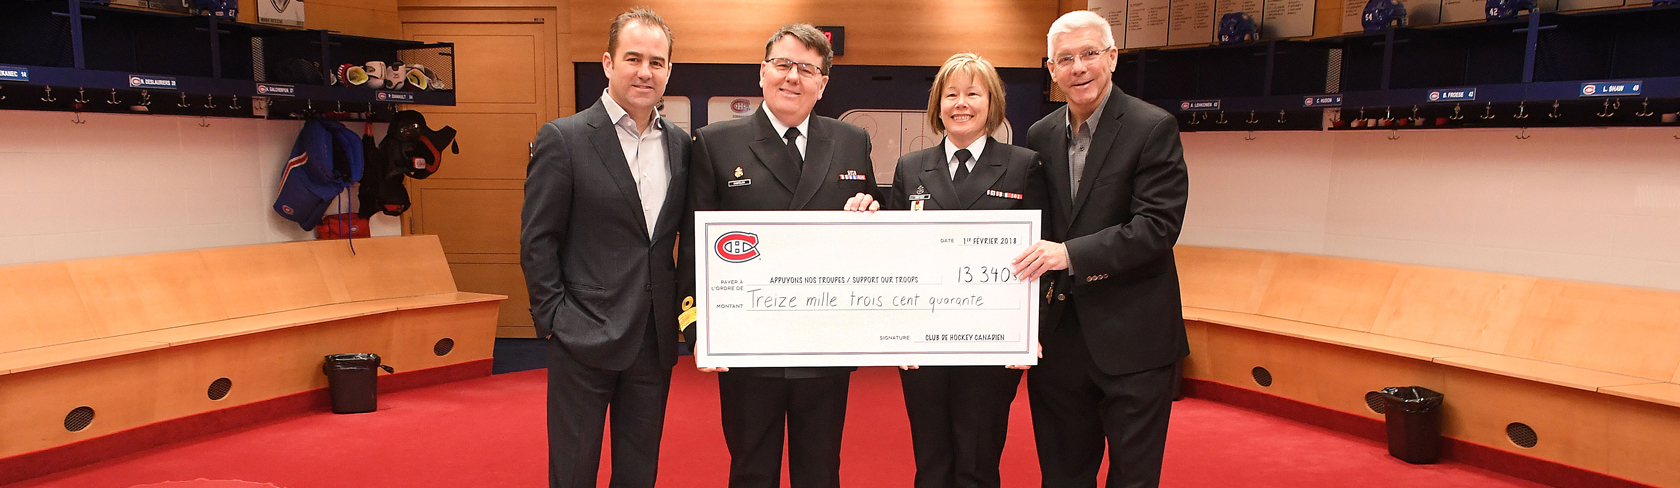 Thank You Montreal Canadiens! Image